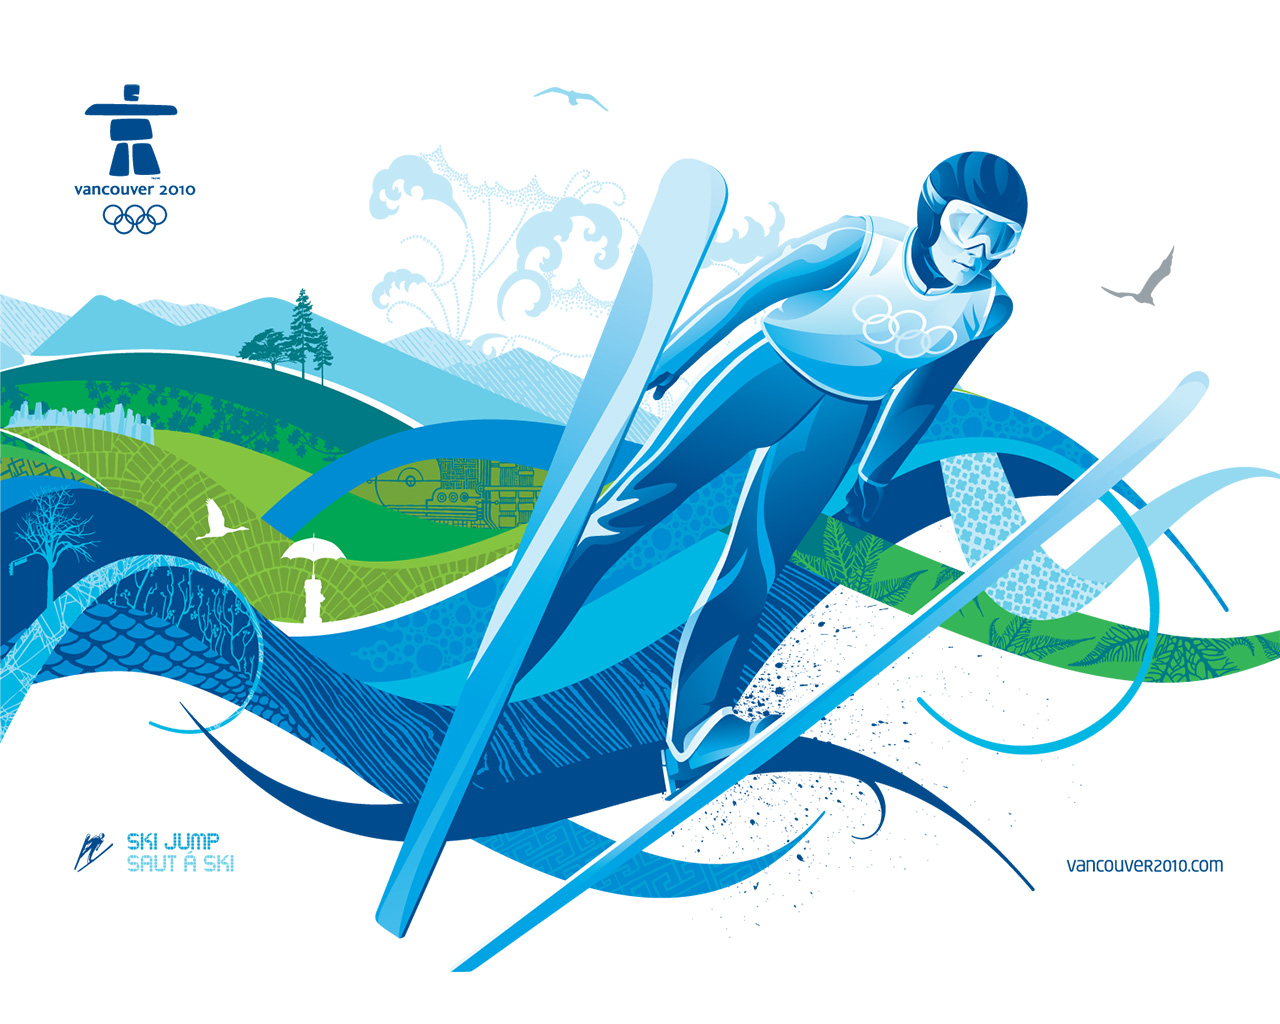 Vancouver 2010 olympic winter games powerpoint backgrounds free free vancouver 2010 olympic winter games powerpoint background 4 toneelgroepblik Gallery